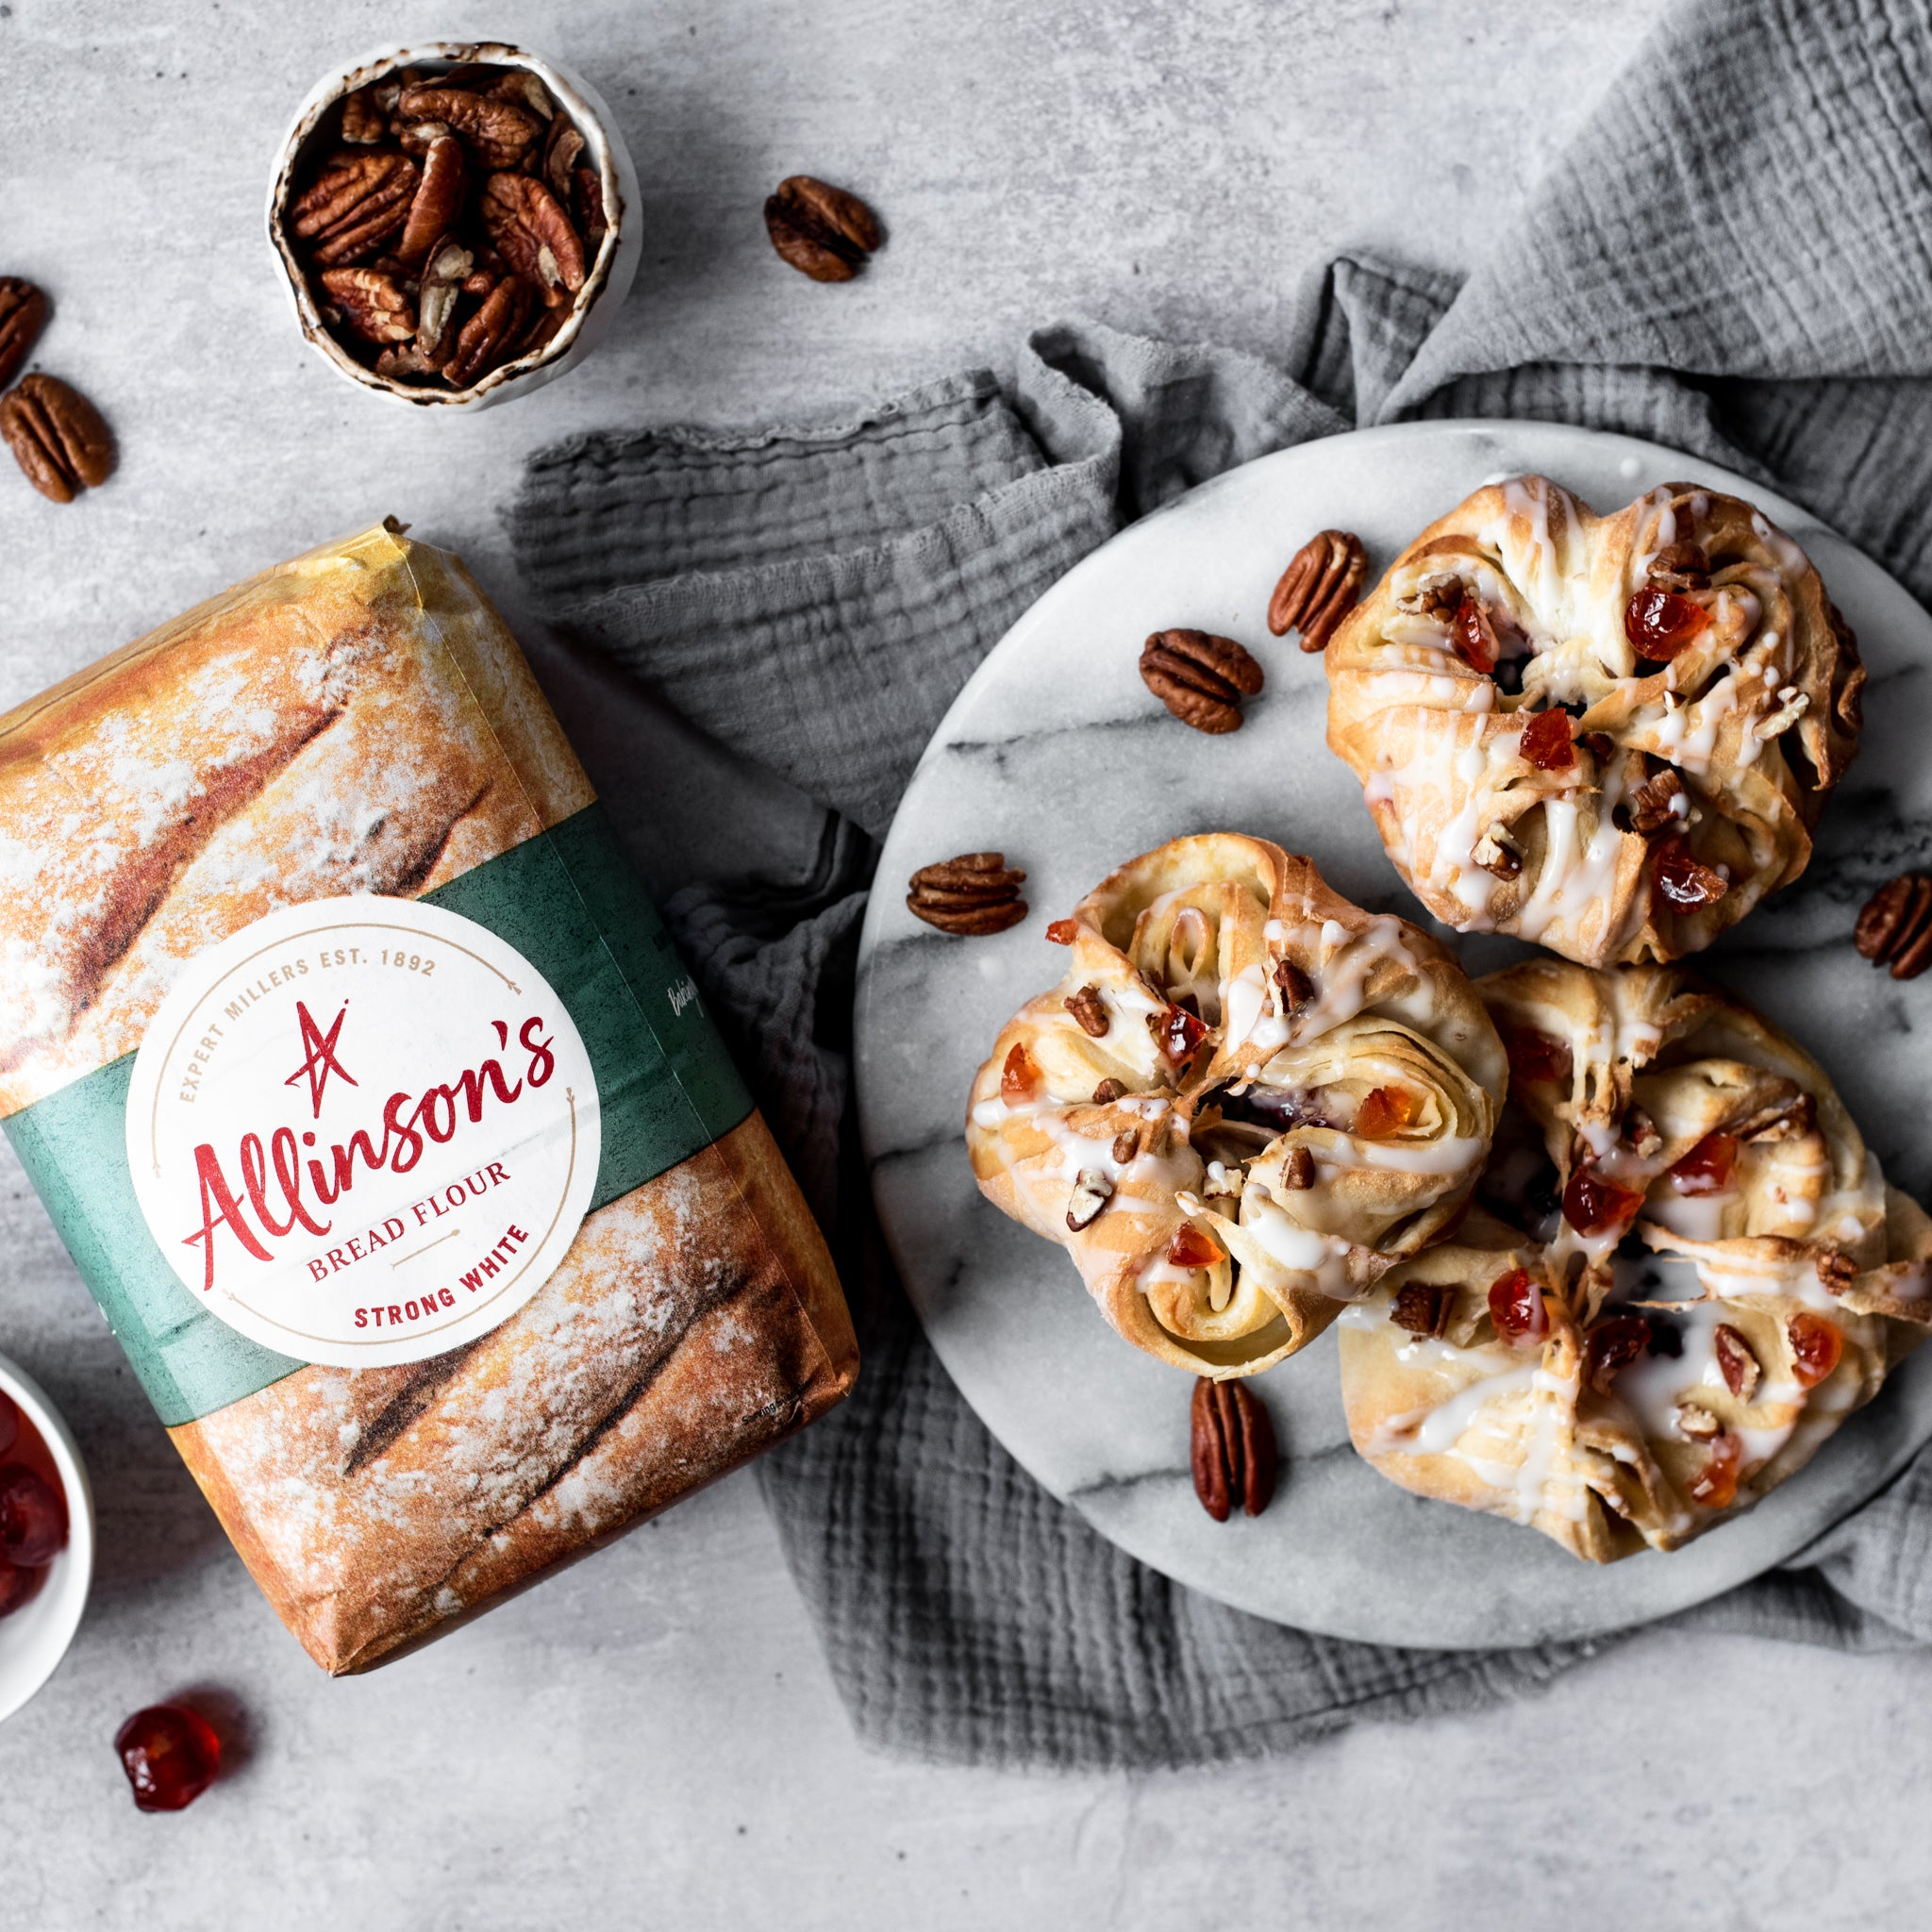 Overhead shot of 3 danish pastries on a plate with pecan nuts and flour pack